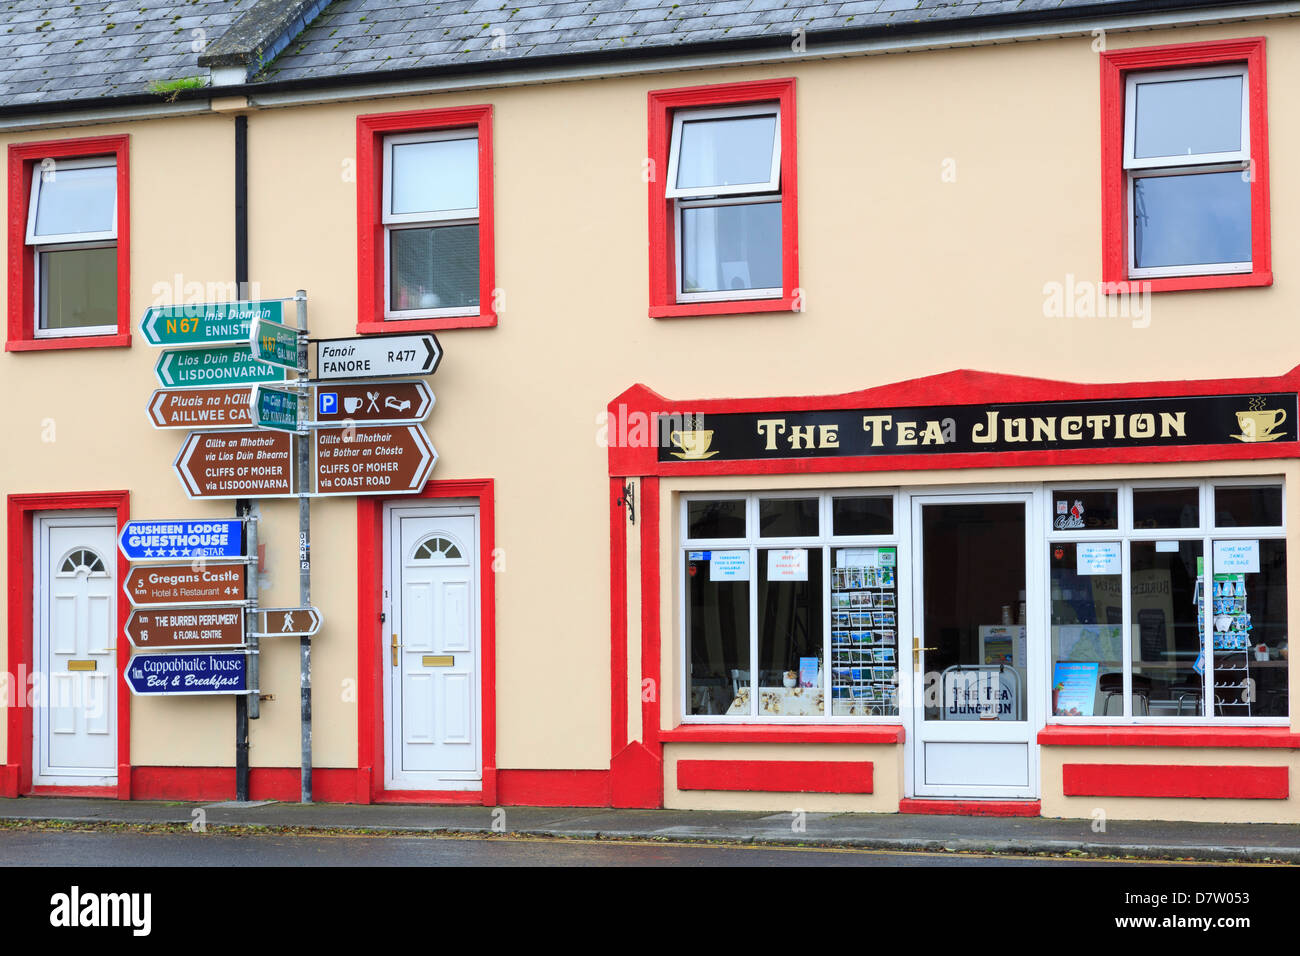 Cafe in Ballyvaughan Town, County Clare, Munster, Republic of Ireland - Stock Image